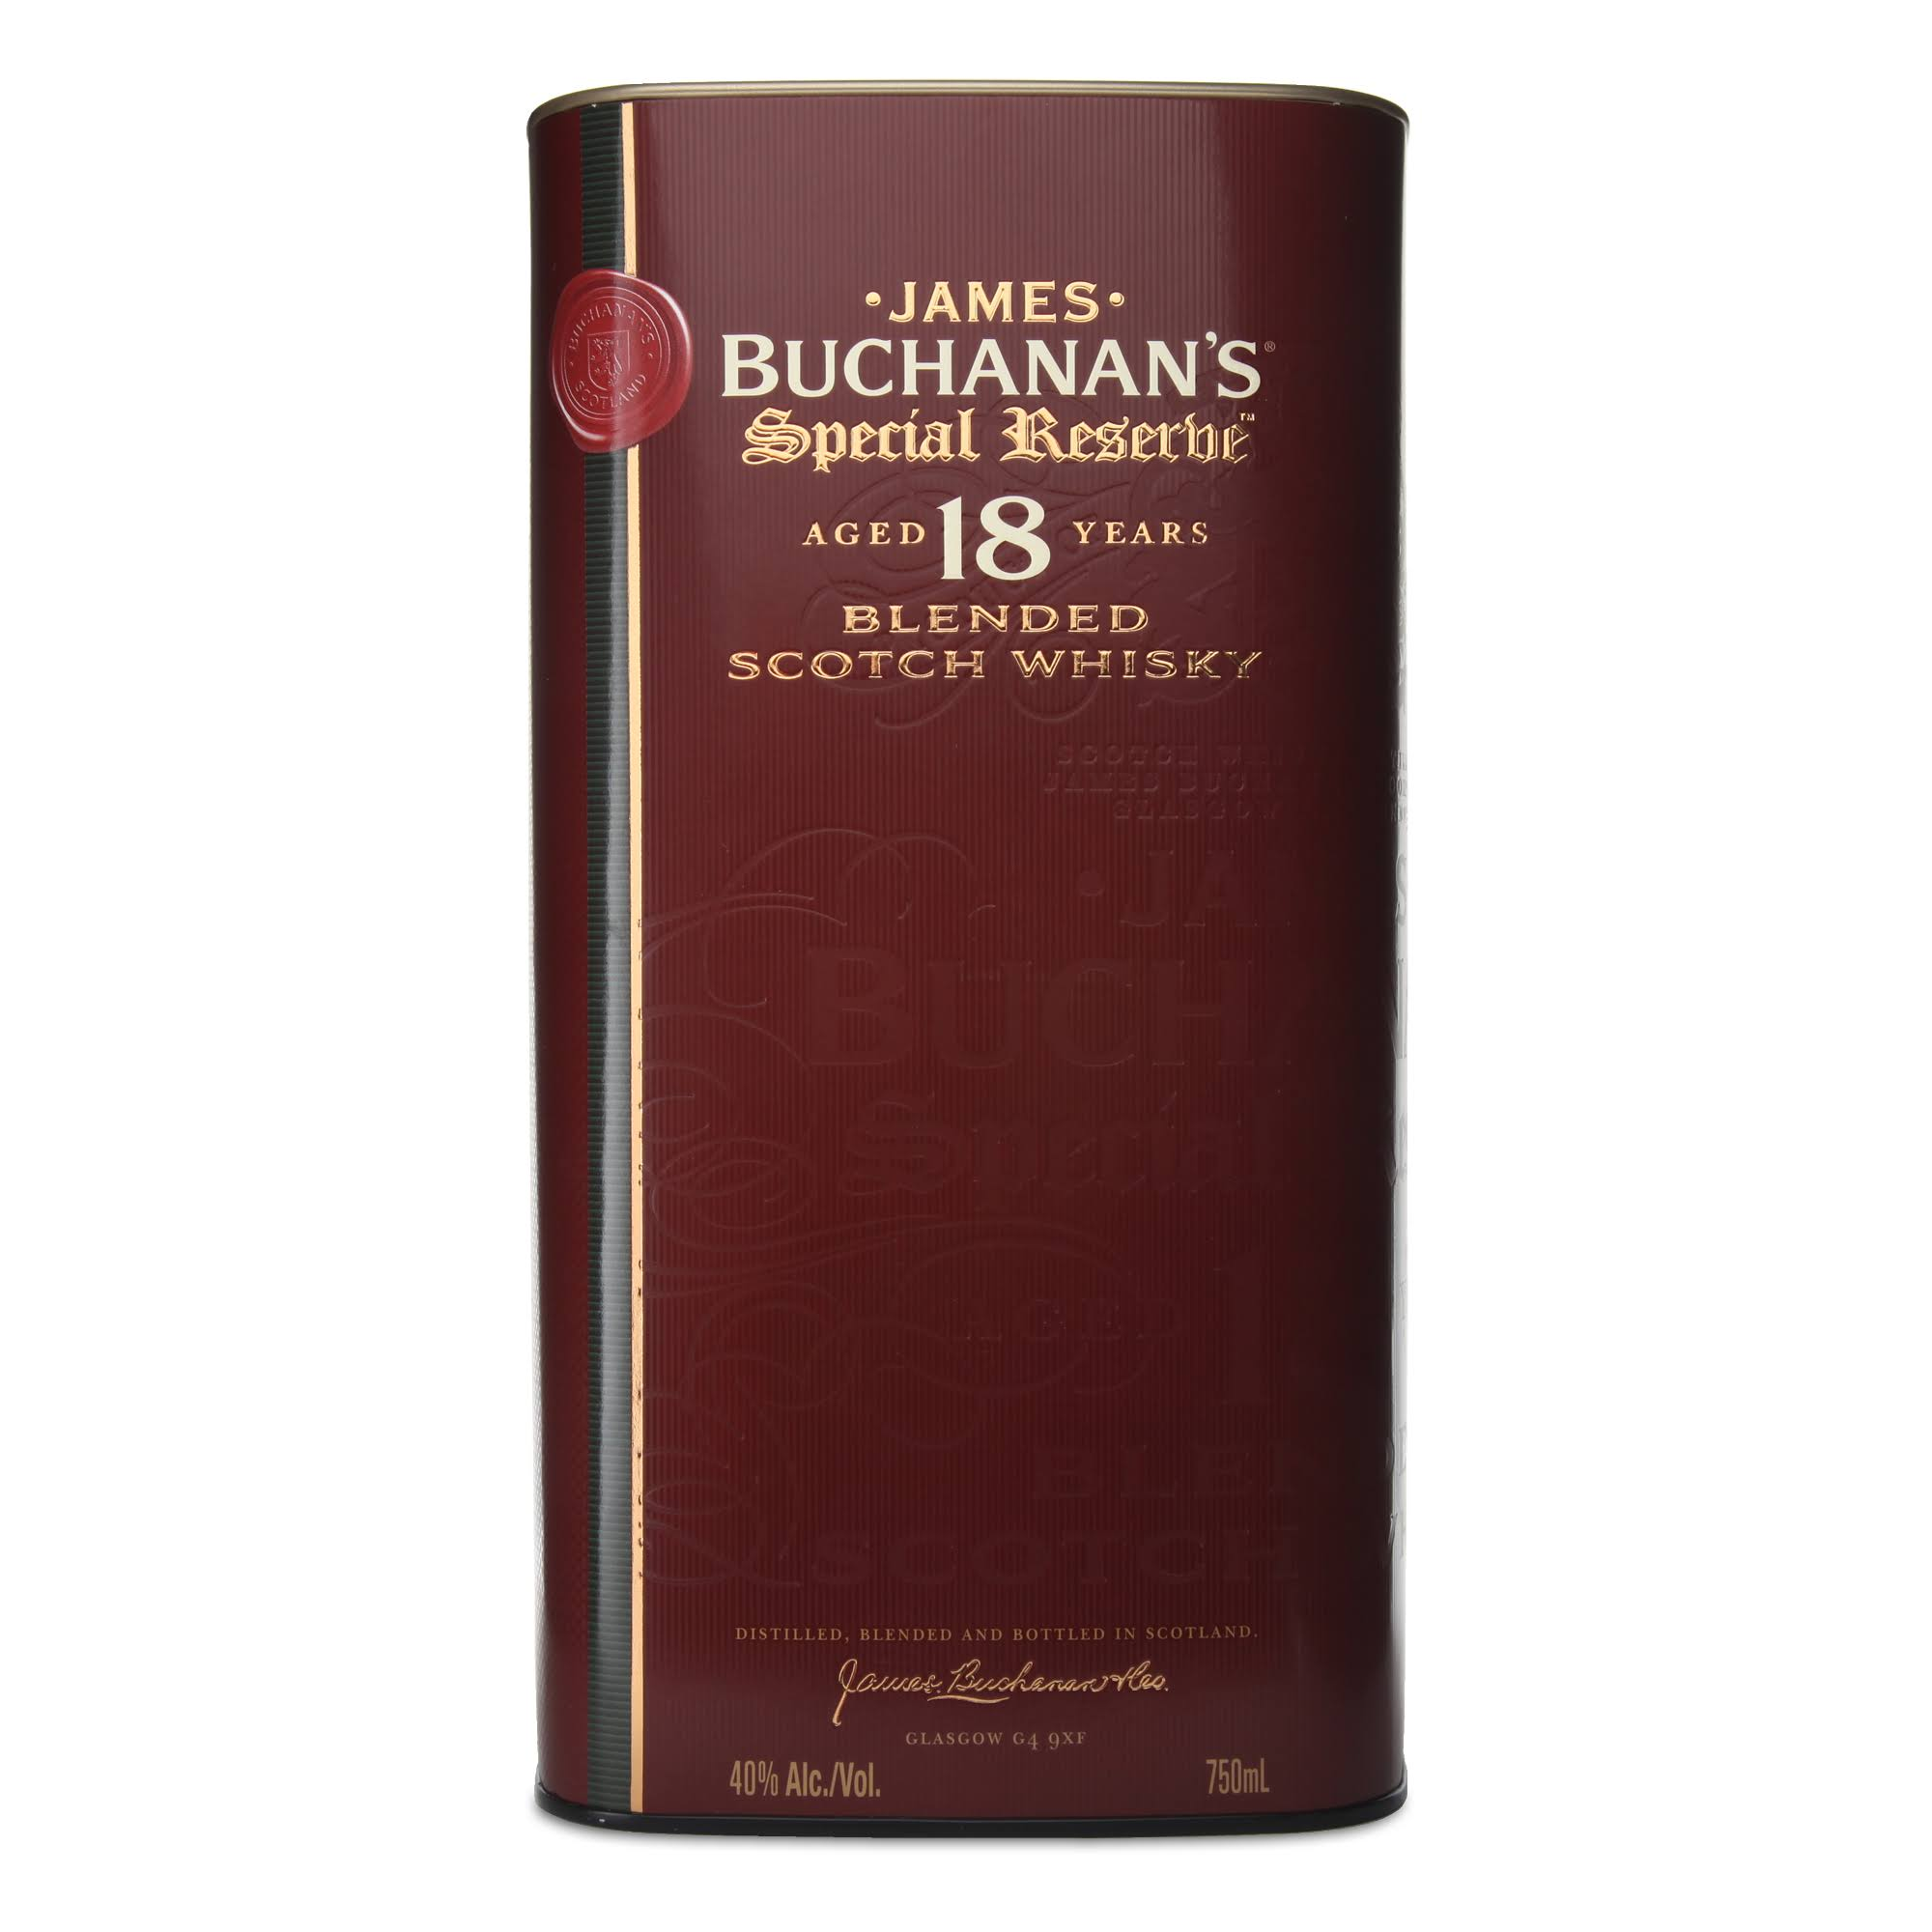 Buchanan's Blended Scotch Whisky - 18 Years Old, 750ml